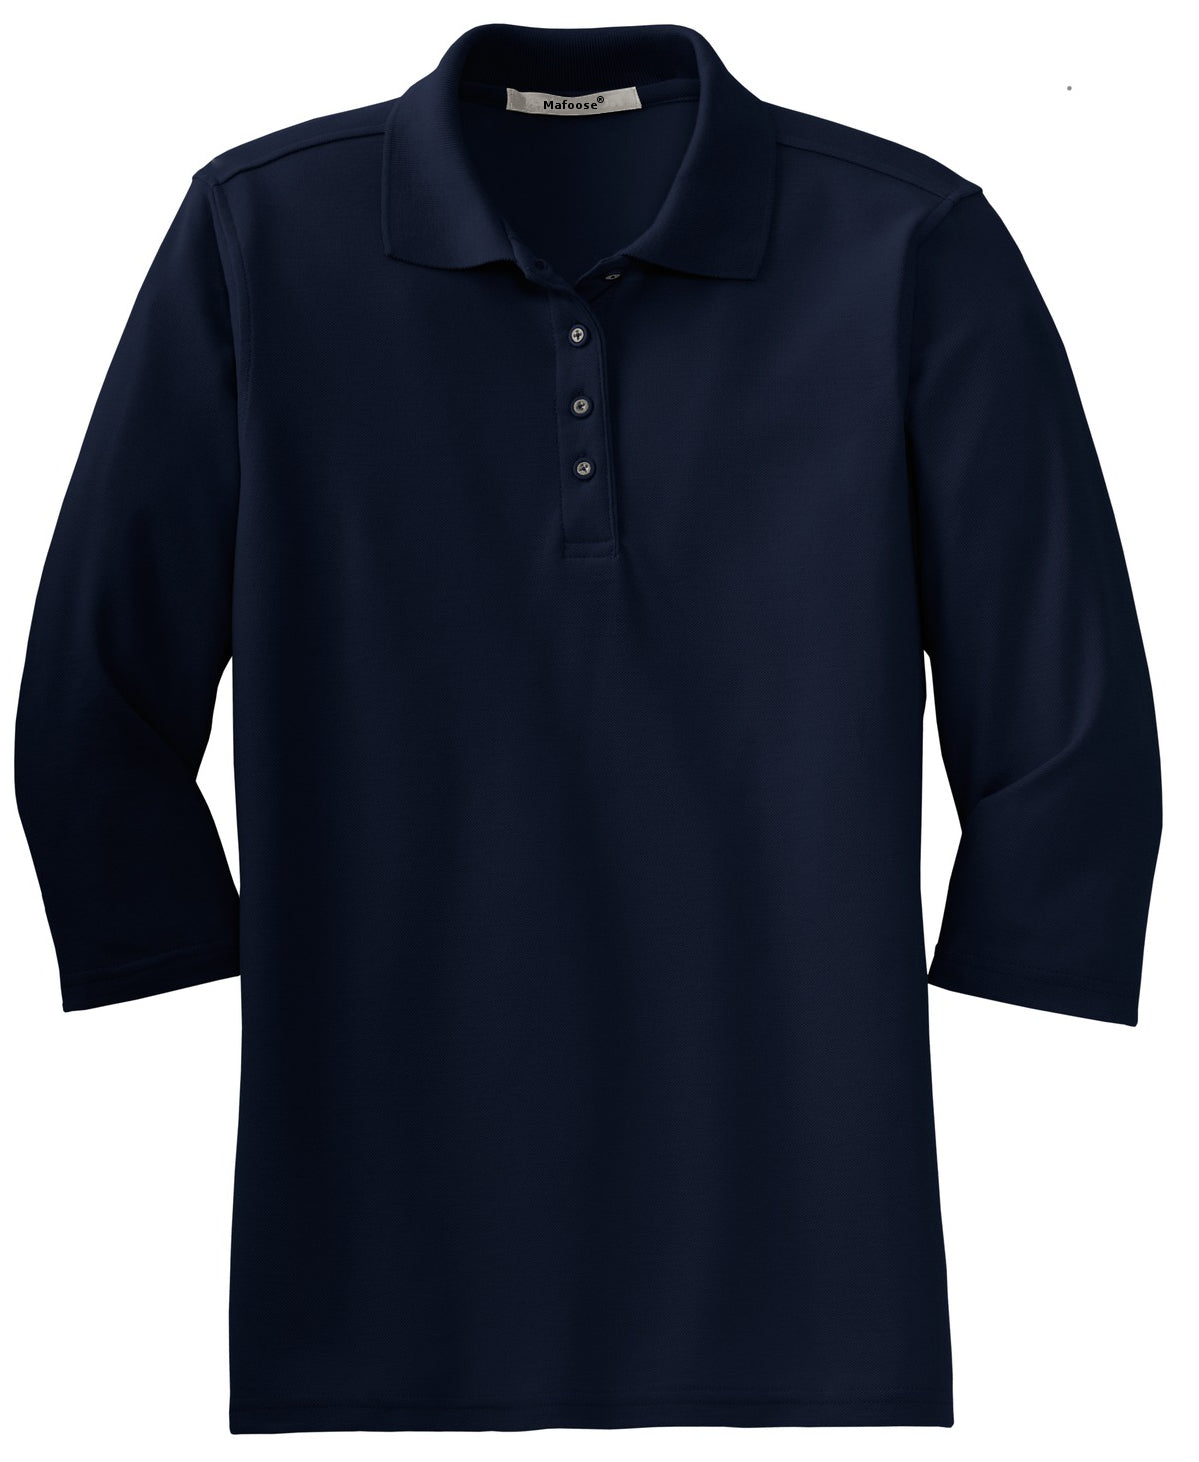 Mafoose Women's Silk Touch ¾ Sleeve Polo Shirt Navy-Front